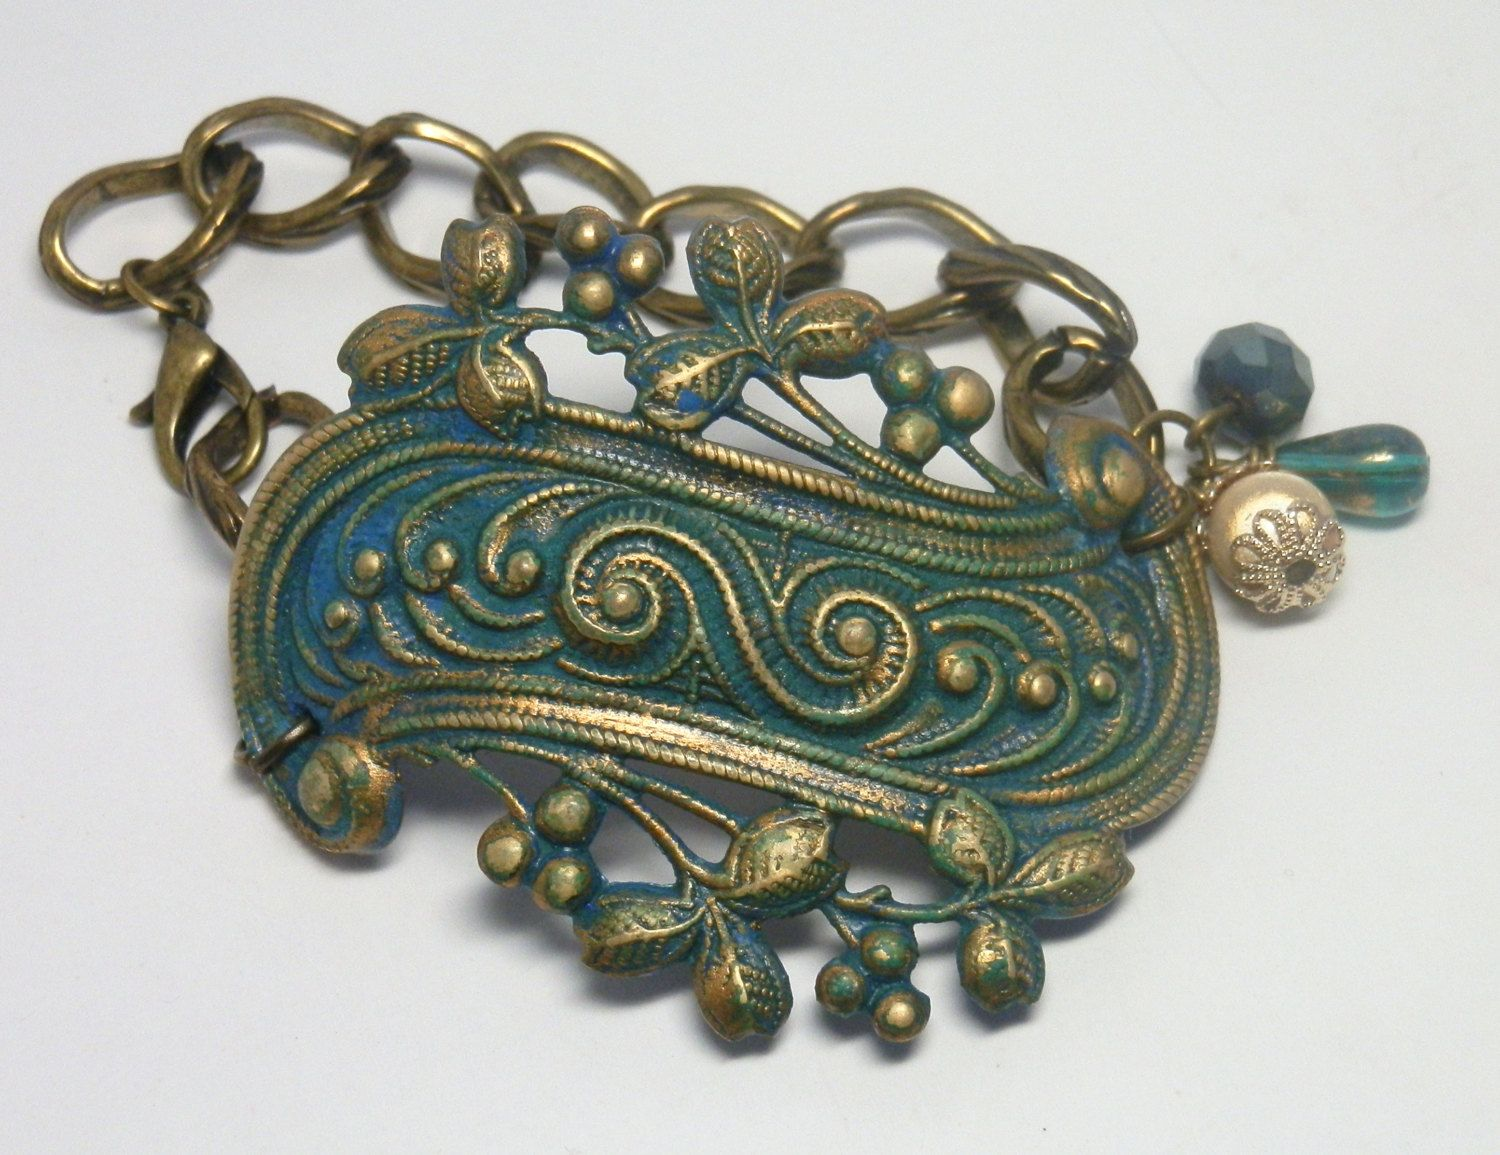 Victorian scroll bracelet cuff - American made brass - miracle bead - antiqued brass chain - Swellegant chartreuse dye oxide & blue patina by FireskyeDesigns on Etsy